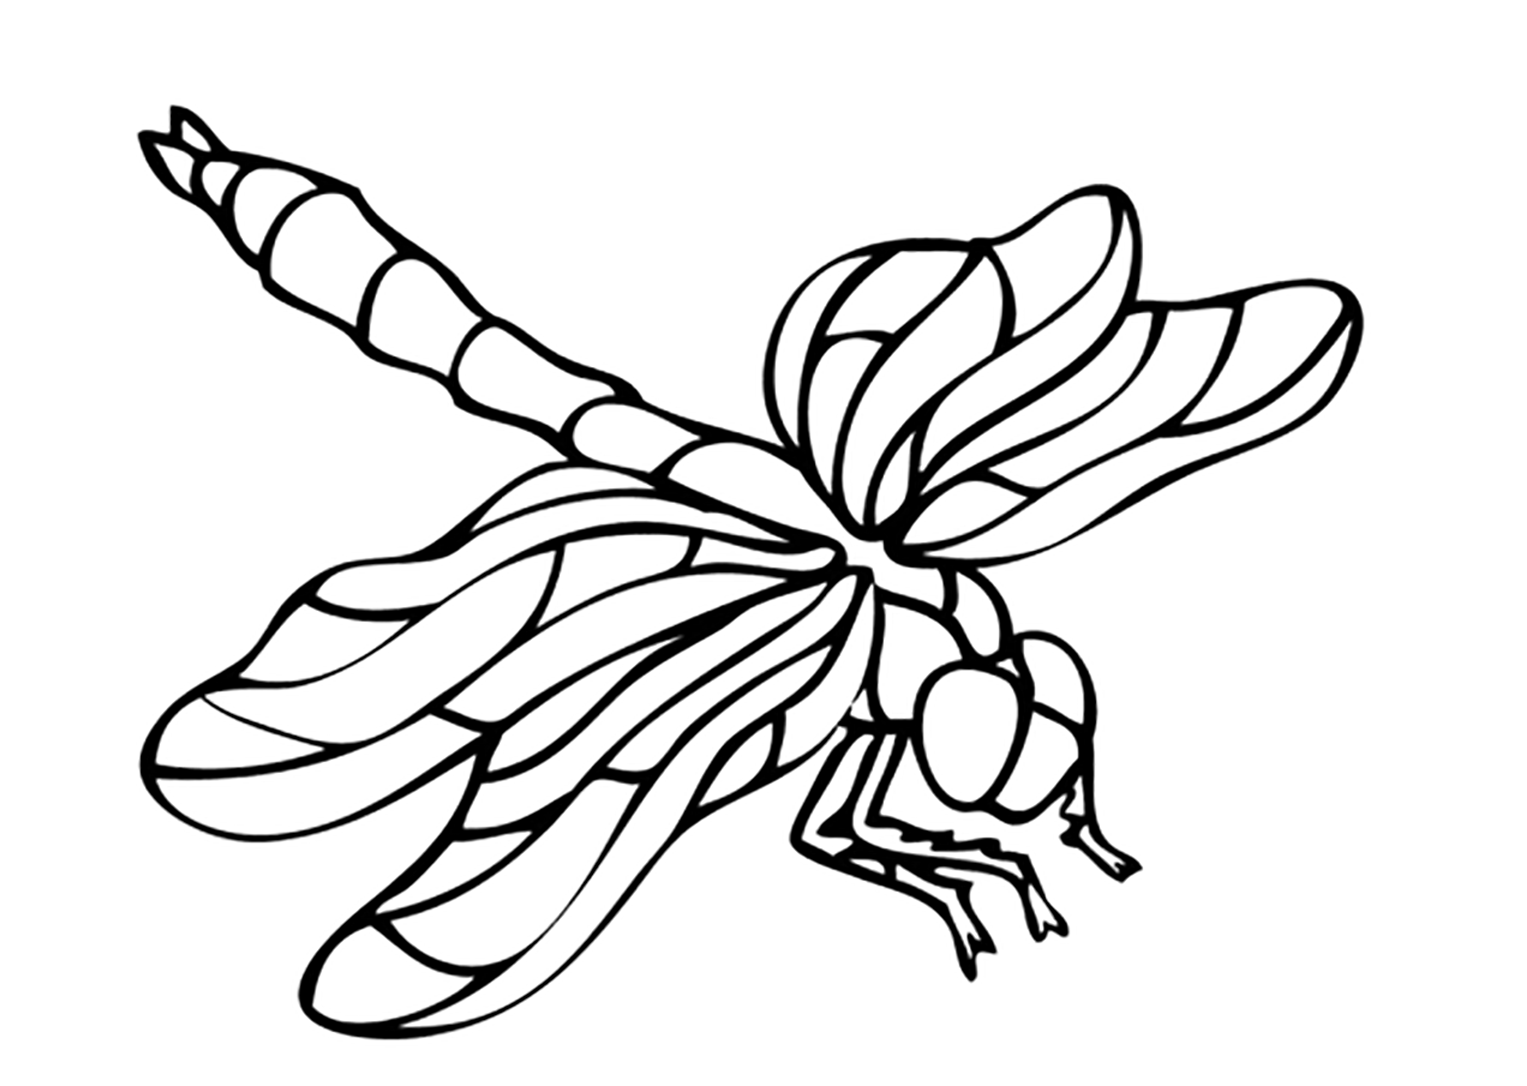 Insects To Print Simple Free Insects Coloring Page To Print And Color From The Gallery Insec In 2020 Insect Coloring Pages Coloring Pages Printable Coloring Pages